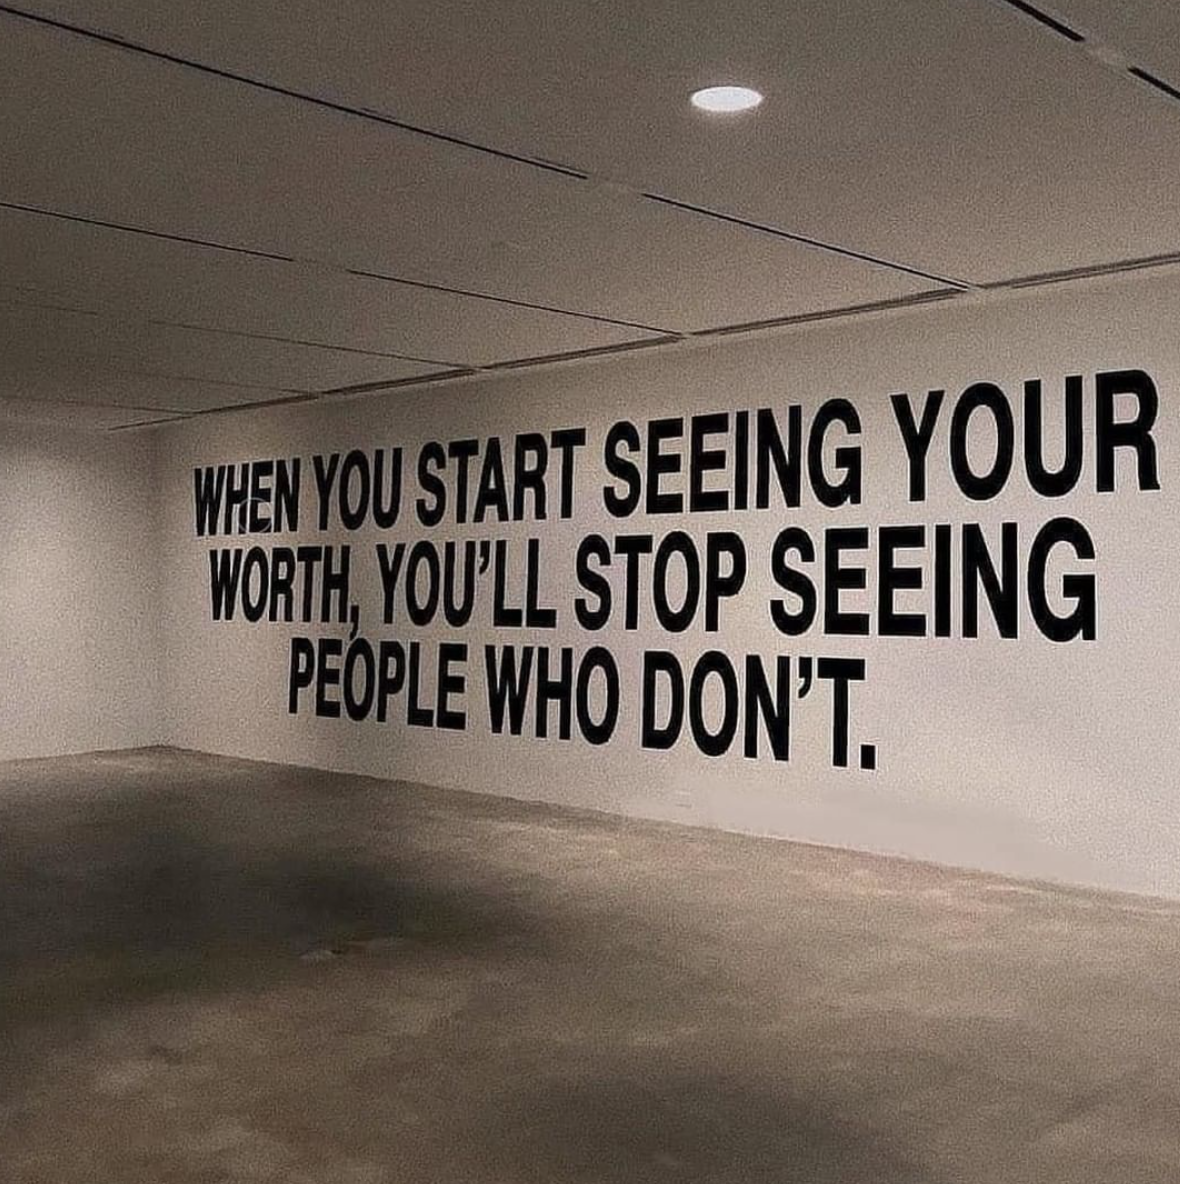 [Image] When you start seeing your worth, You'll stop seeing people who don't.